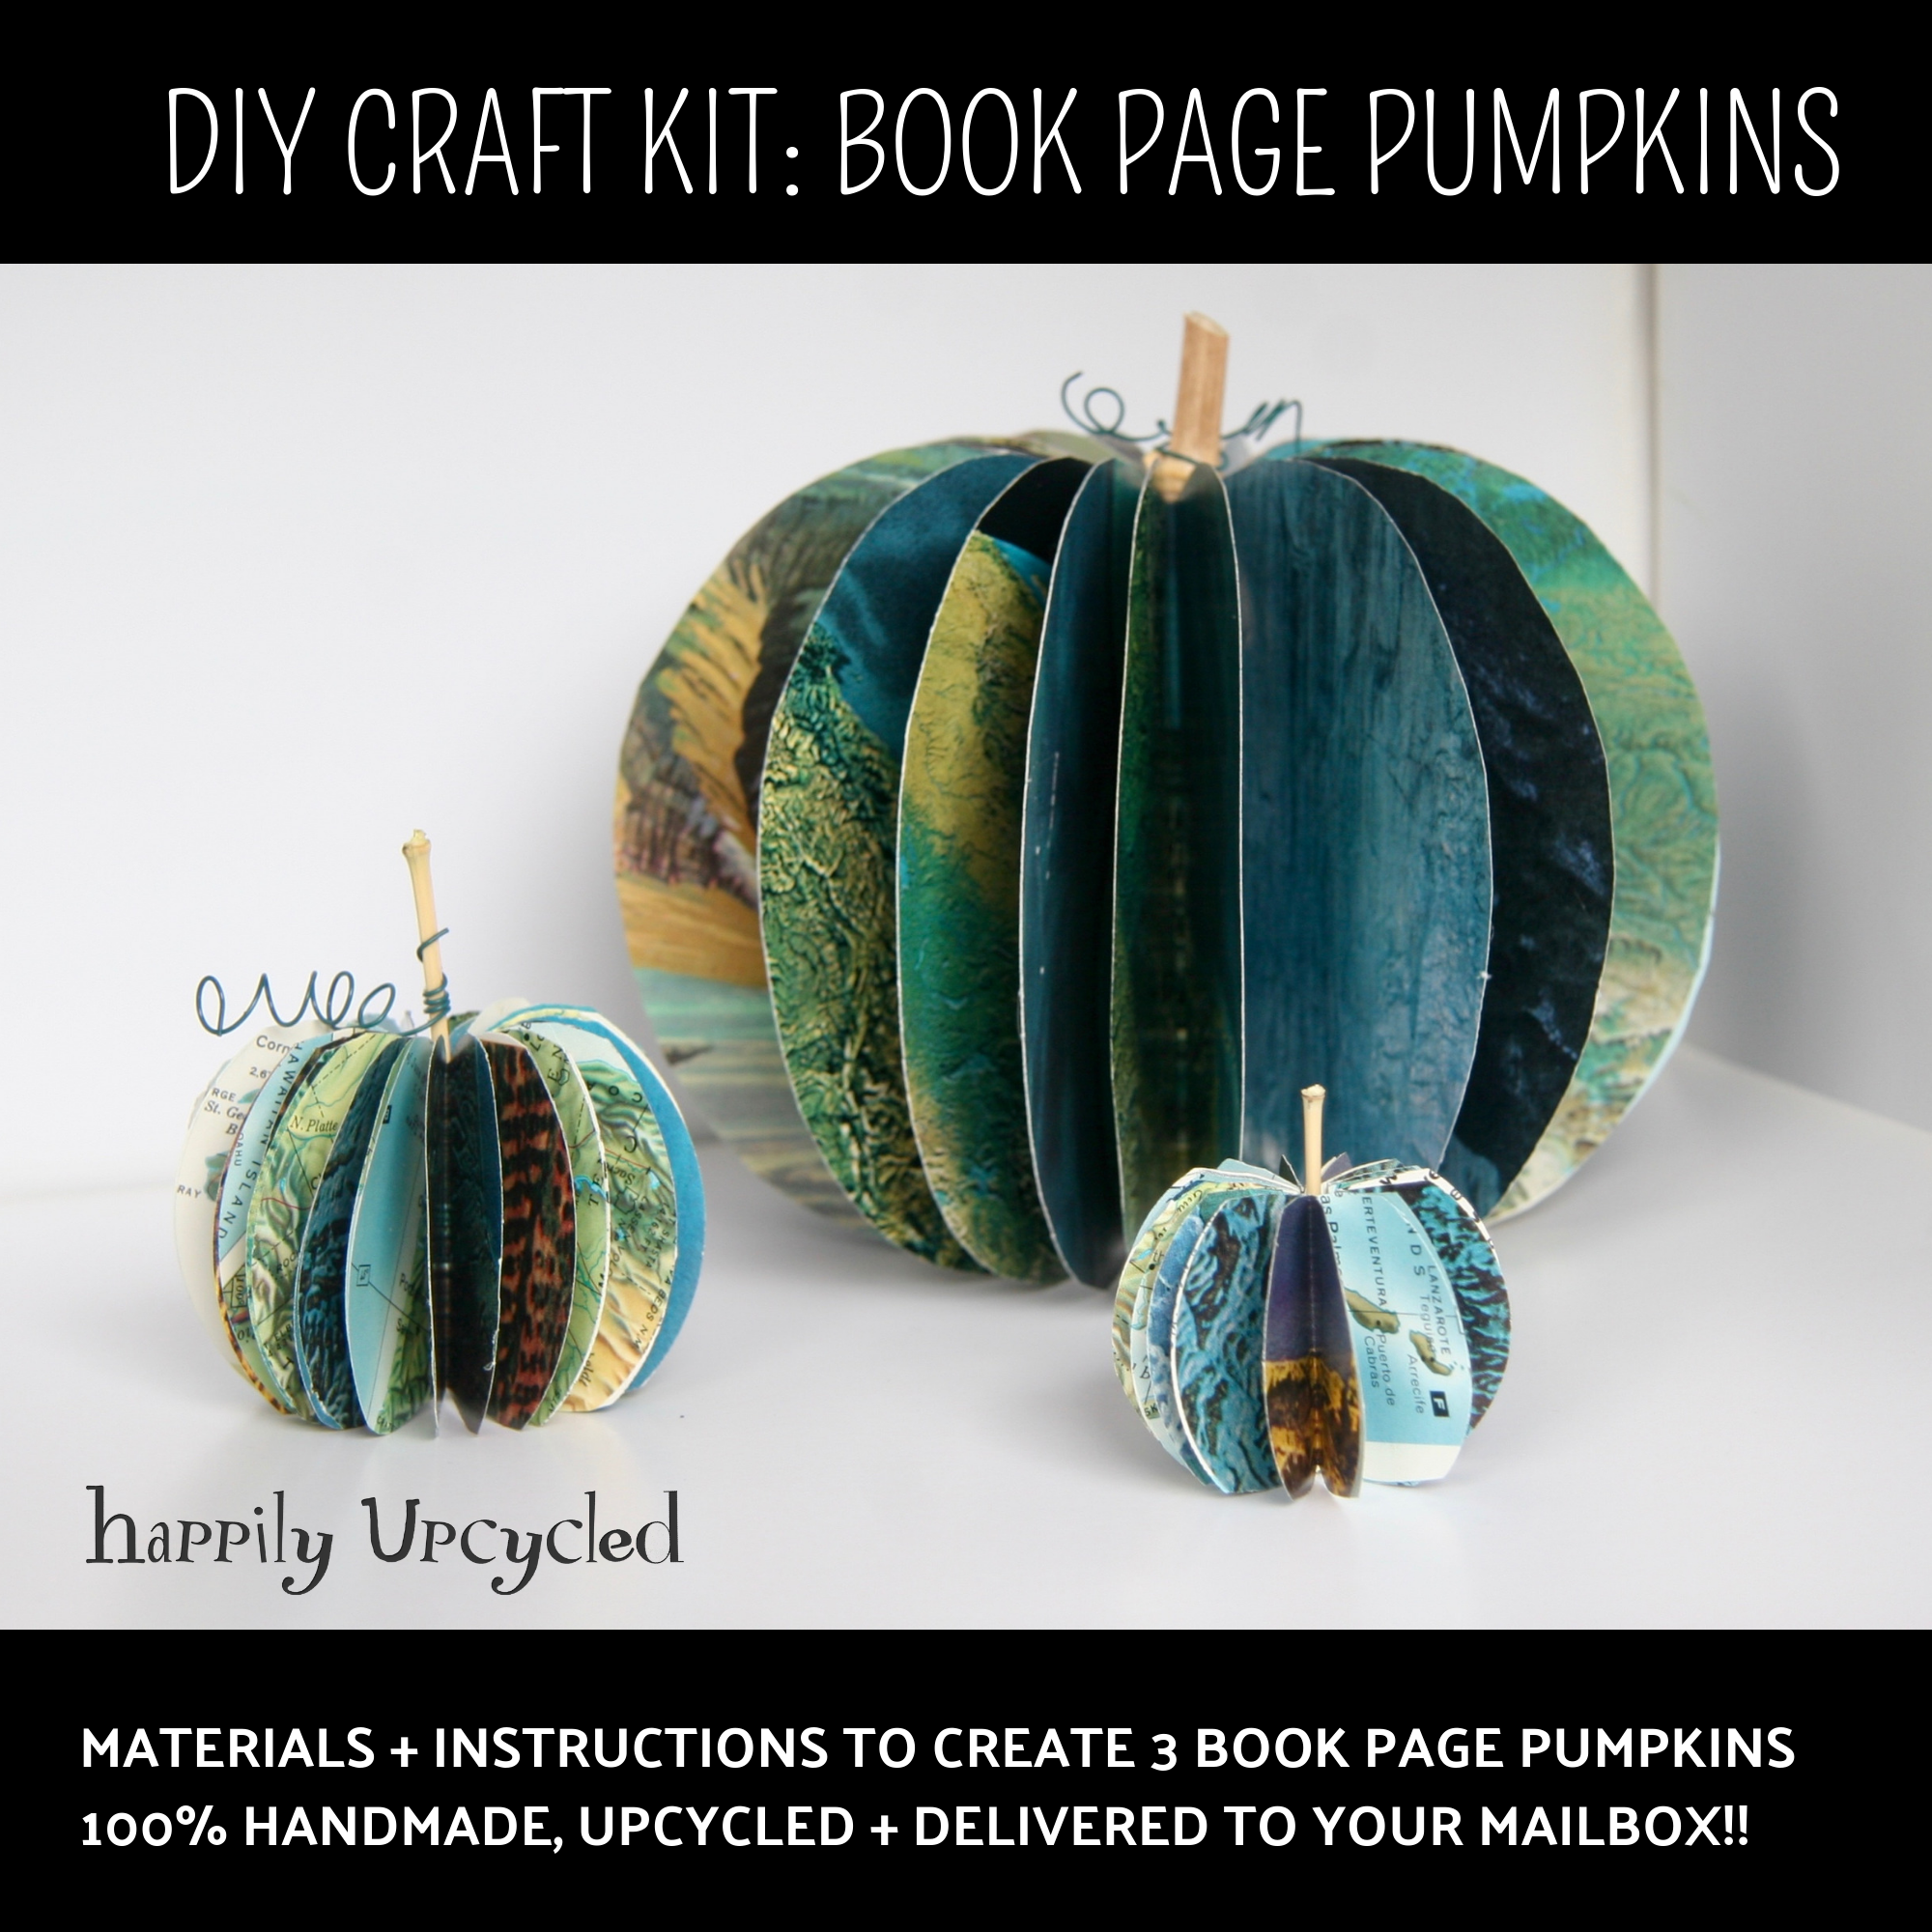 materials + instructions to create 3 book page pumpkins. 100% handmade, upcycled + delivered to your mailbox!!